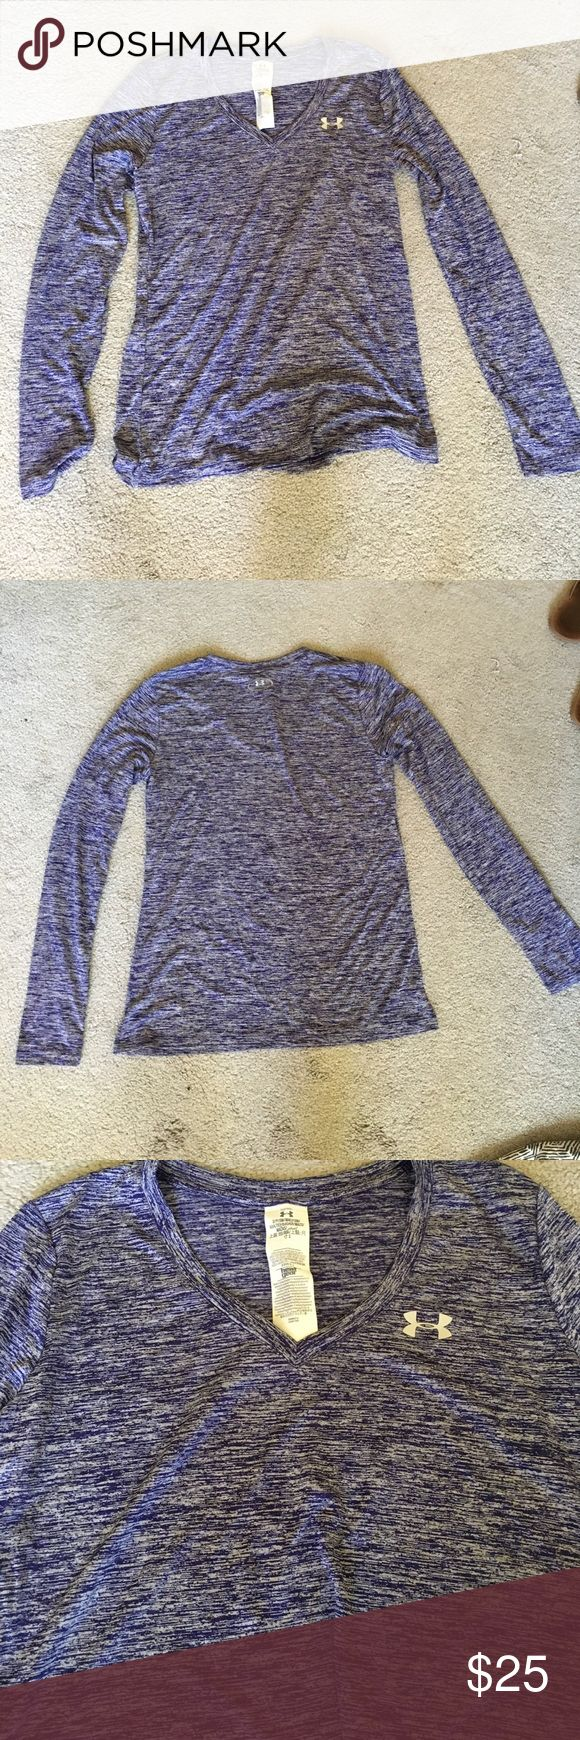 BNWOT Under Amor Heat Gear Longsleeved Workout Top BNWOT Under Amor Heat Gear Longsleeved Workout Top! Size Small. Heathered purple color. Excellent condition, never washed or worn. Super lightweight. Comes from a pet free, smoke free home! Under Armour Tops Tees - Long Sleeve